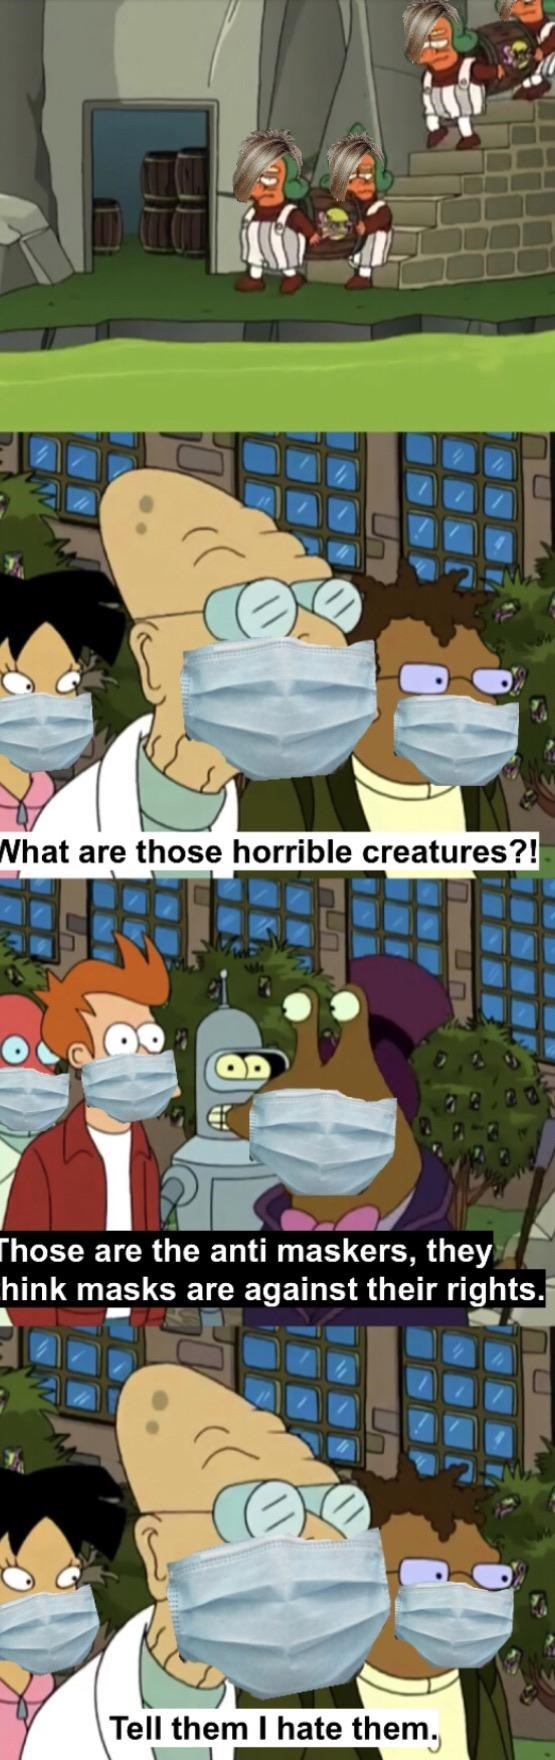 Cartoon - What are those horrible creatures?! Those are the anti maskers, they hink masks are against their rights. Tell them I hate them,